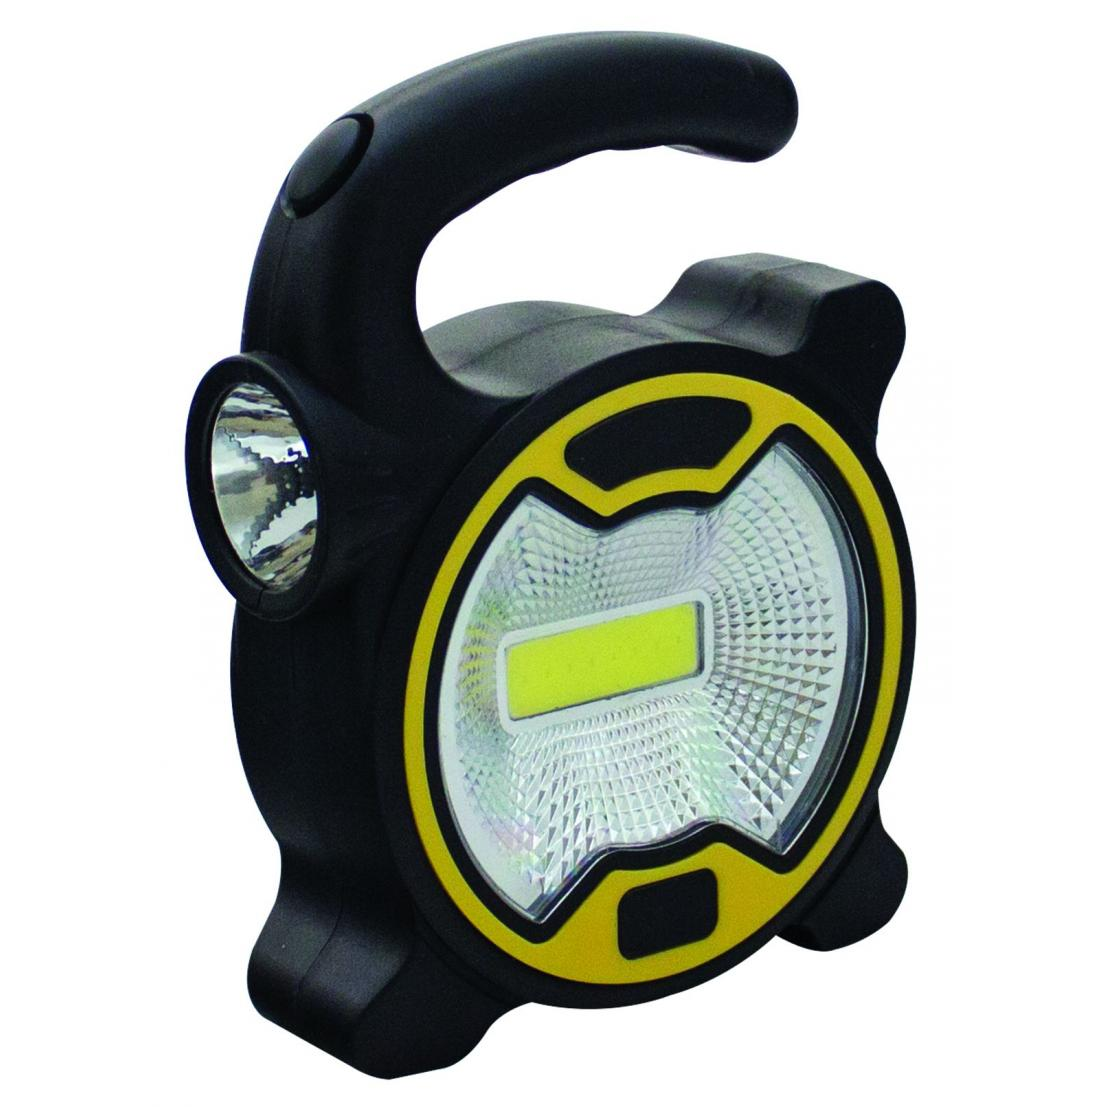 Kingavon 2 in 1 Spotlight & Work Light